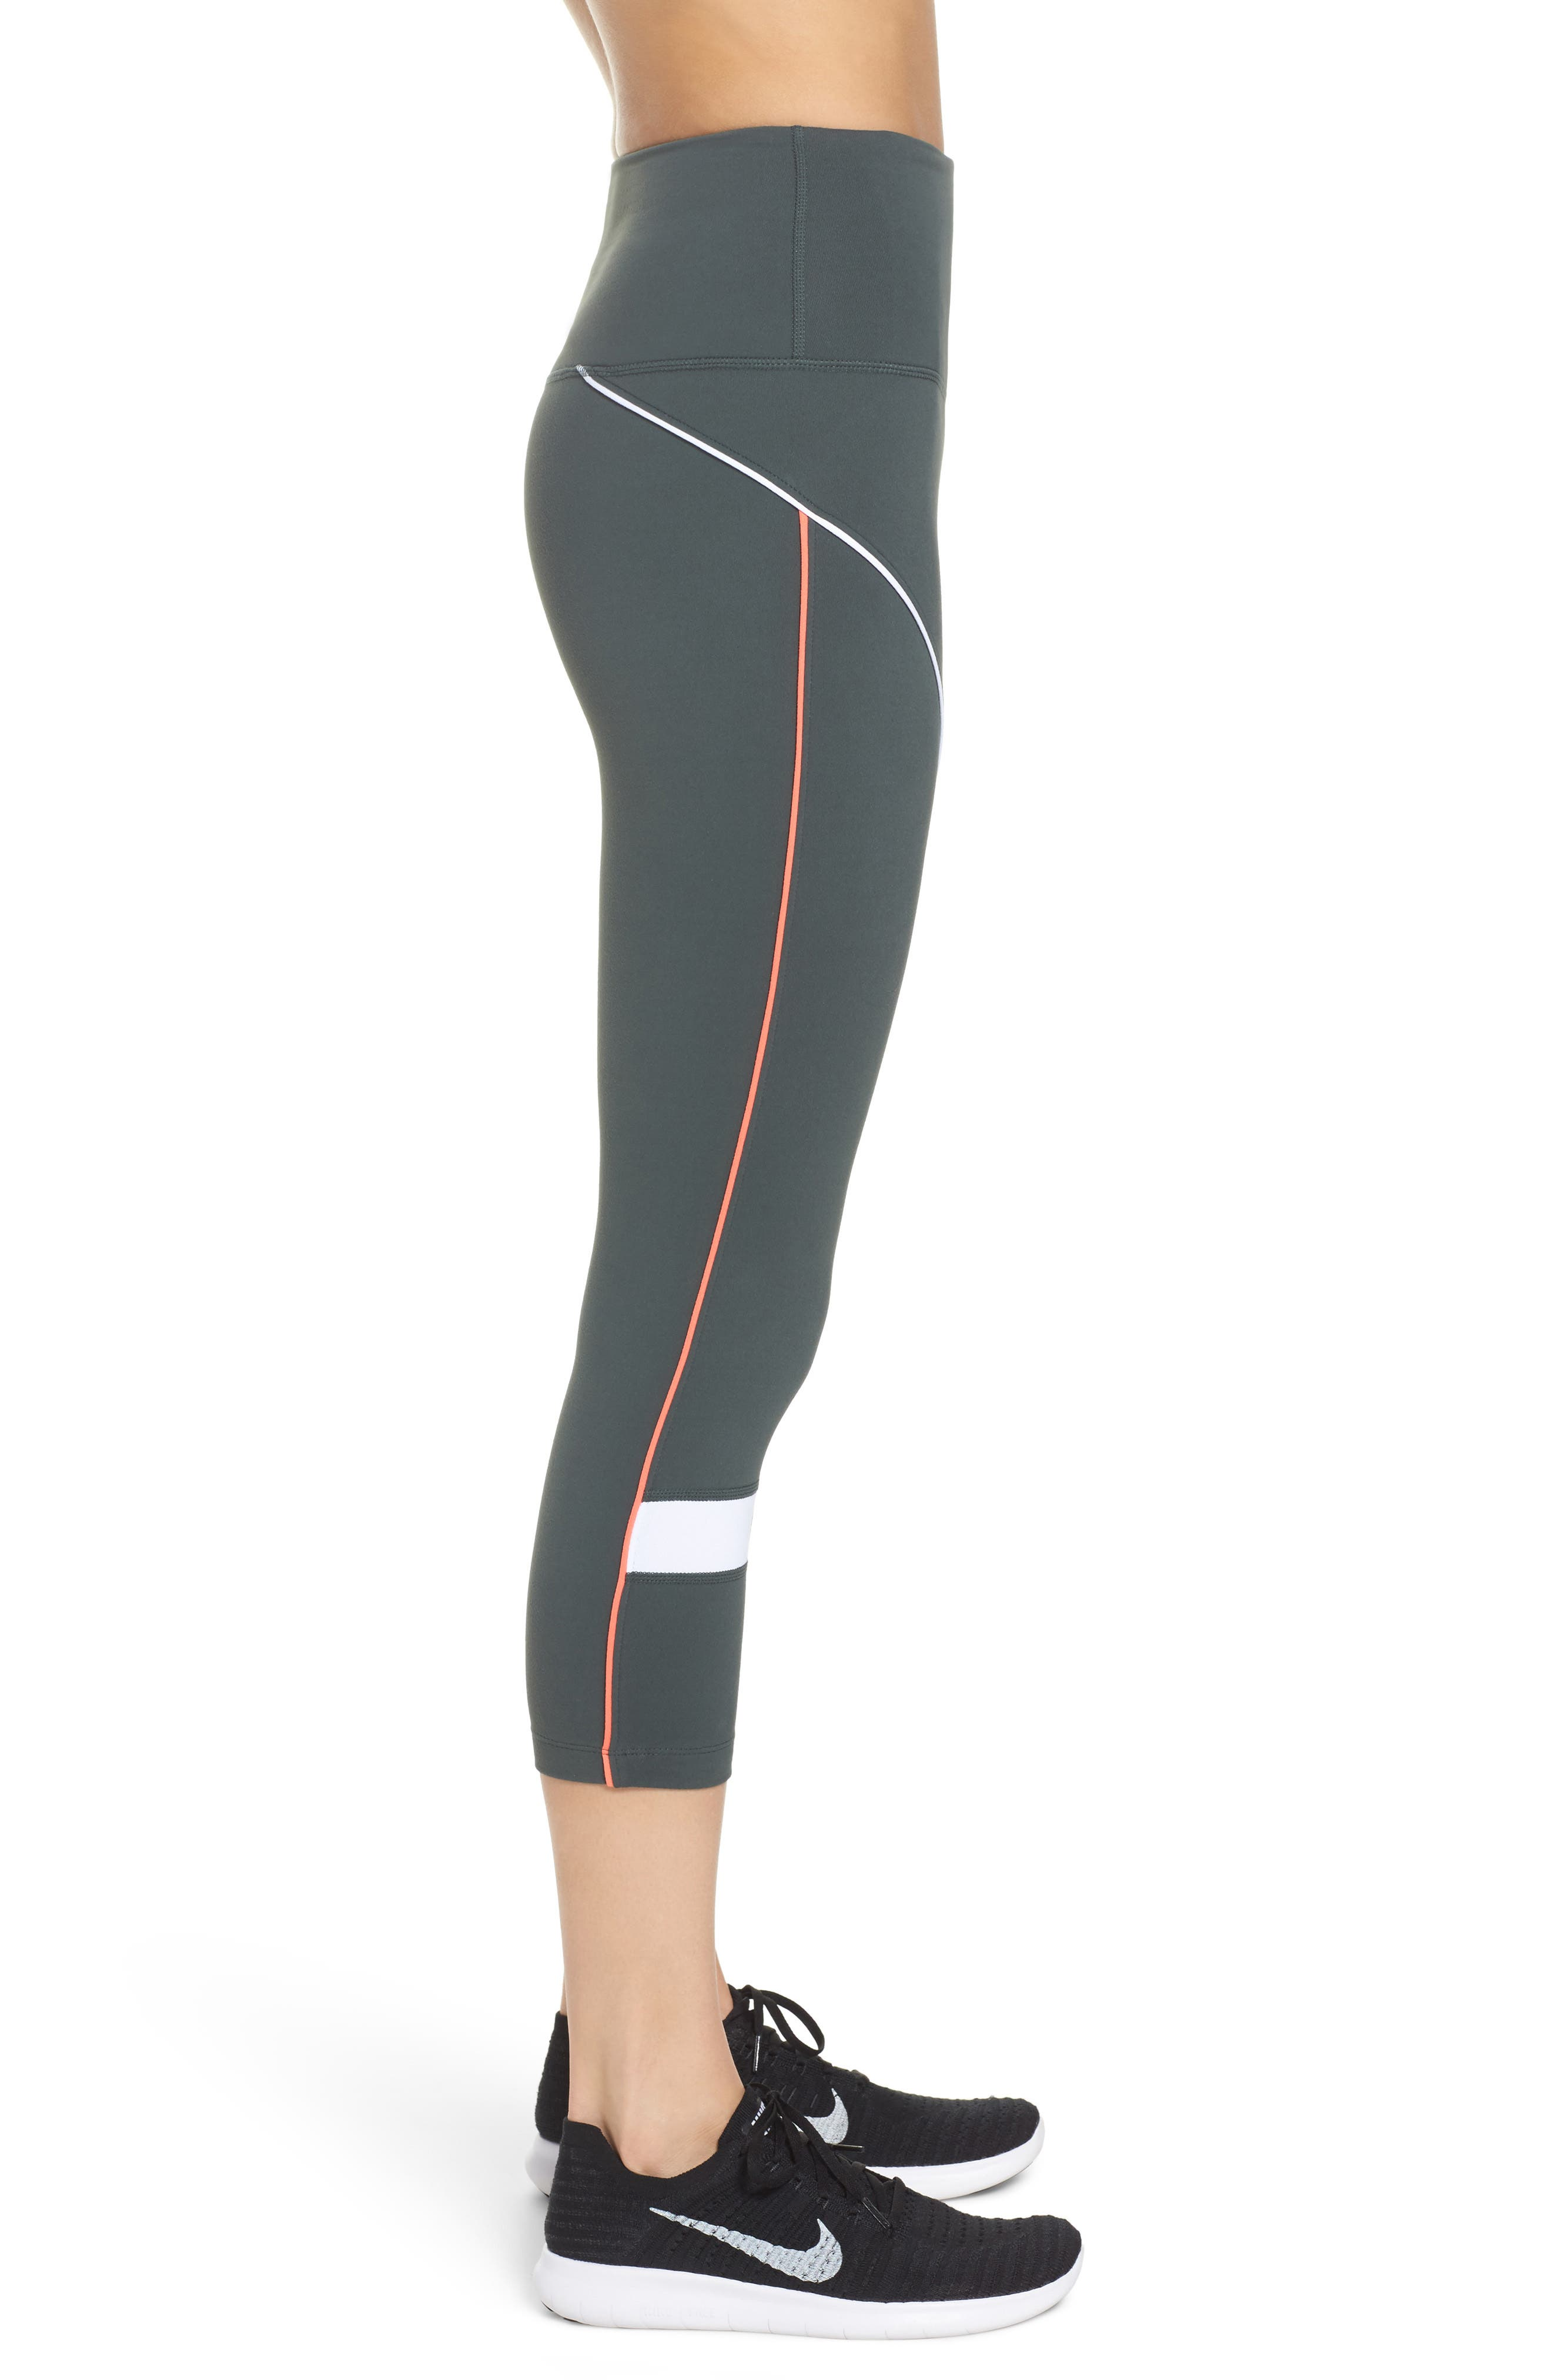 Piper High Waist Crop Leggings,                             Alternate thumbnail 3, color,                             021